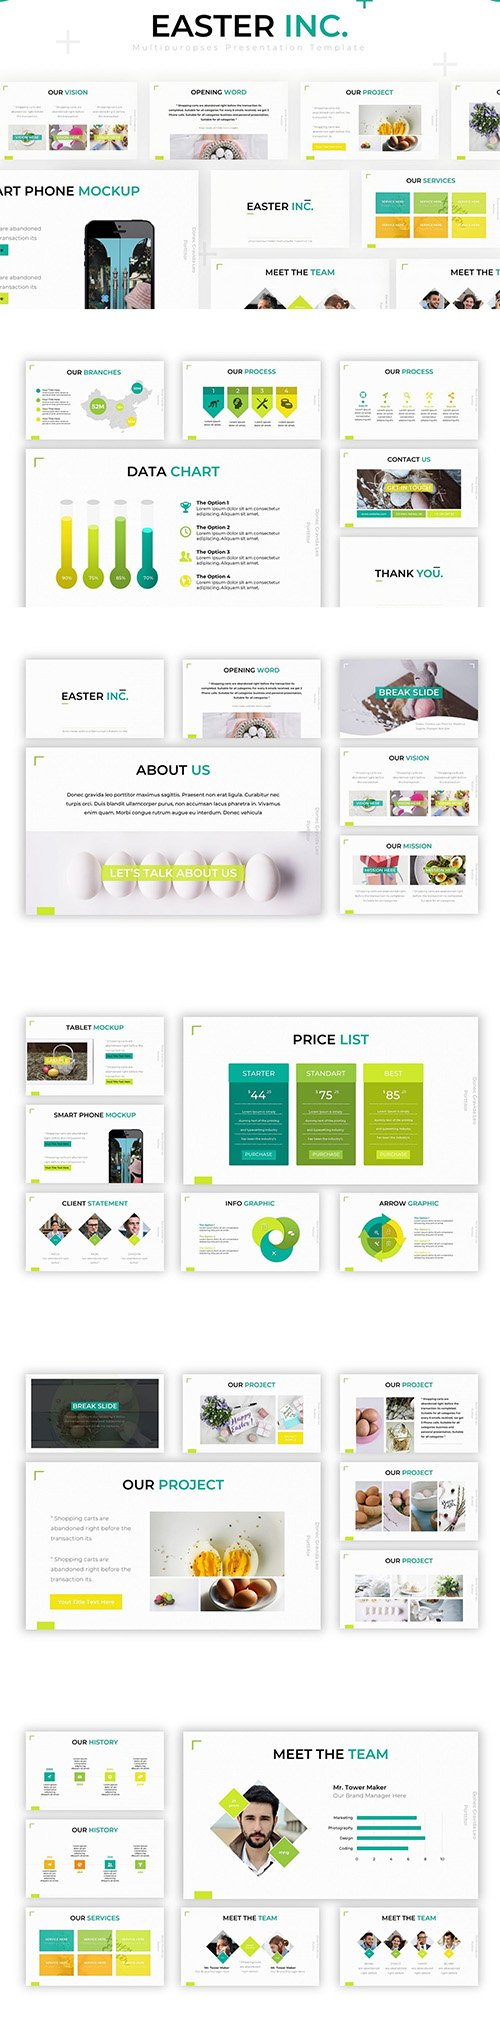 Easter Inc - Powerpoint Template